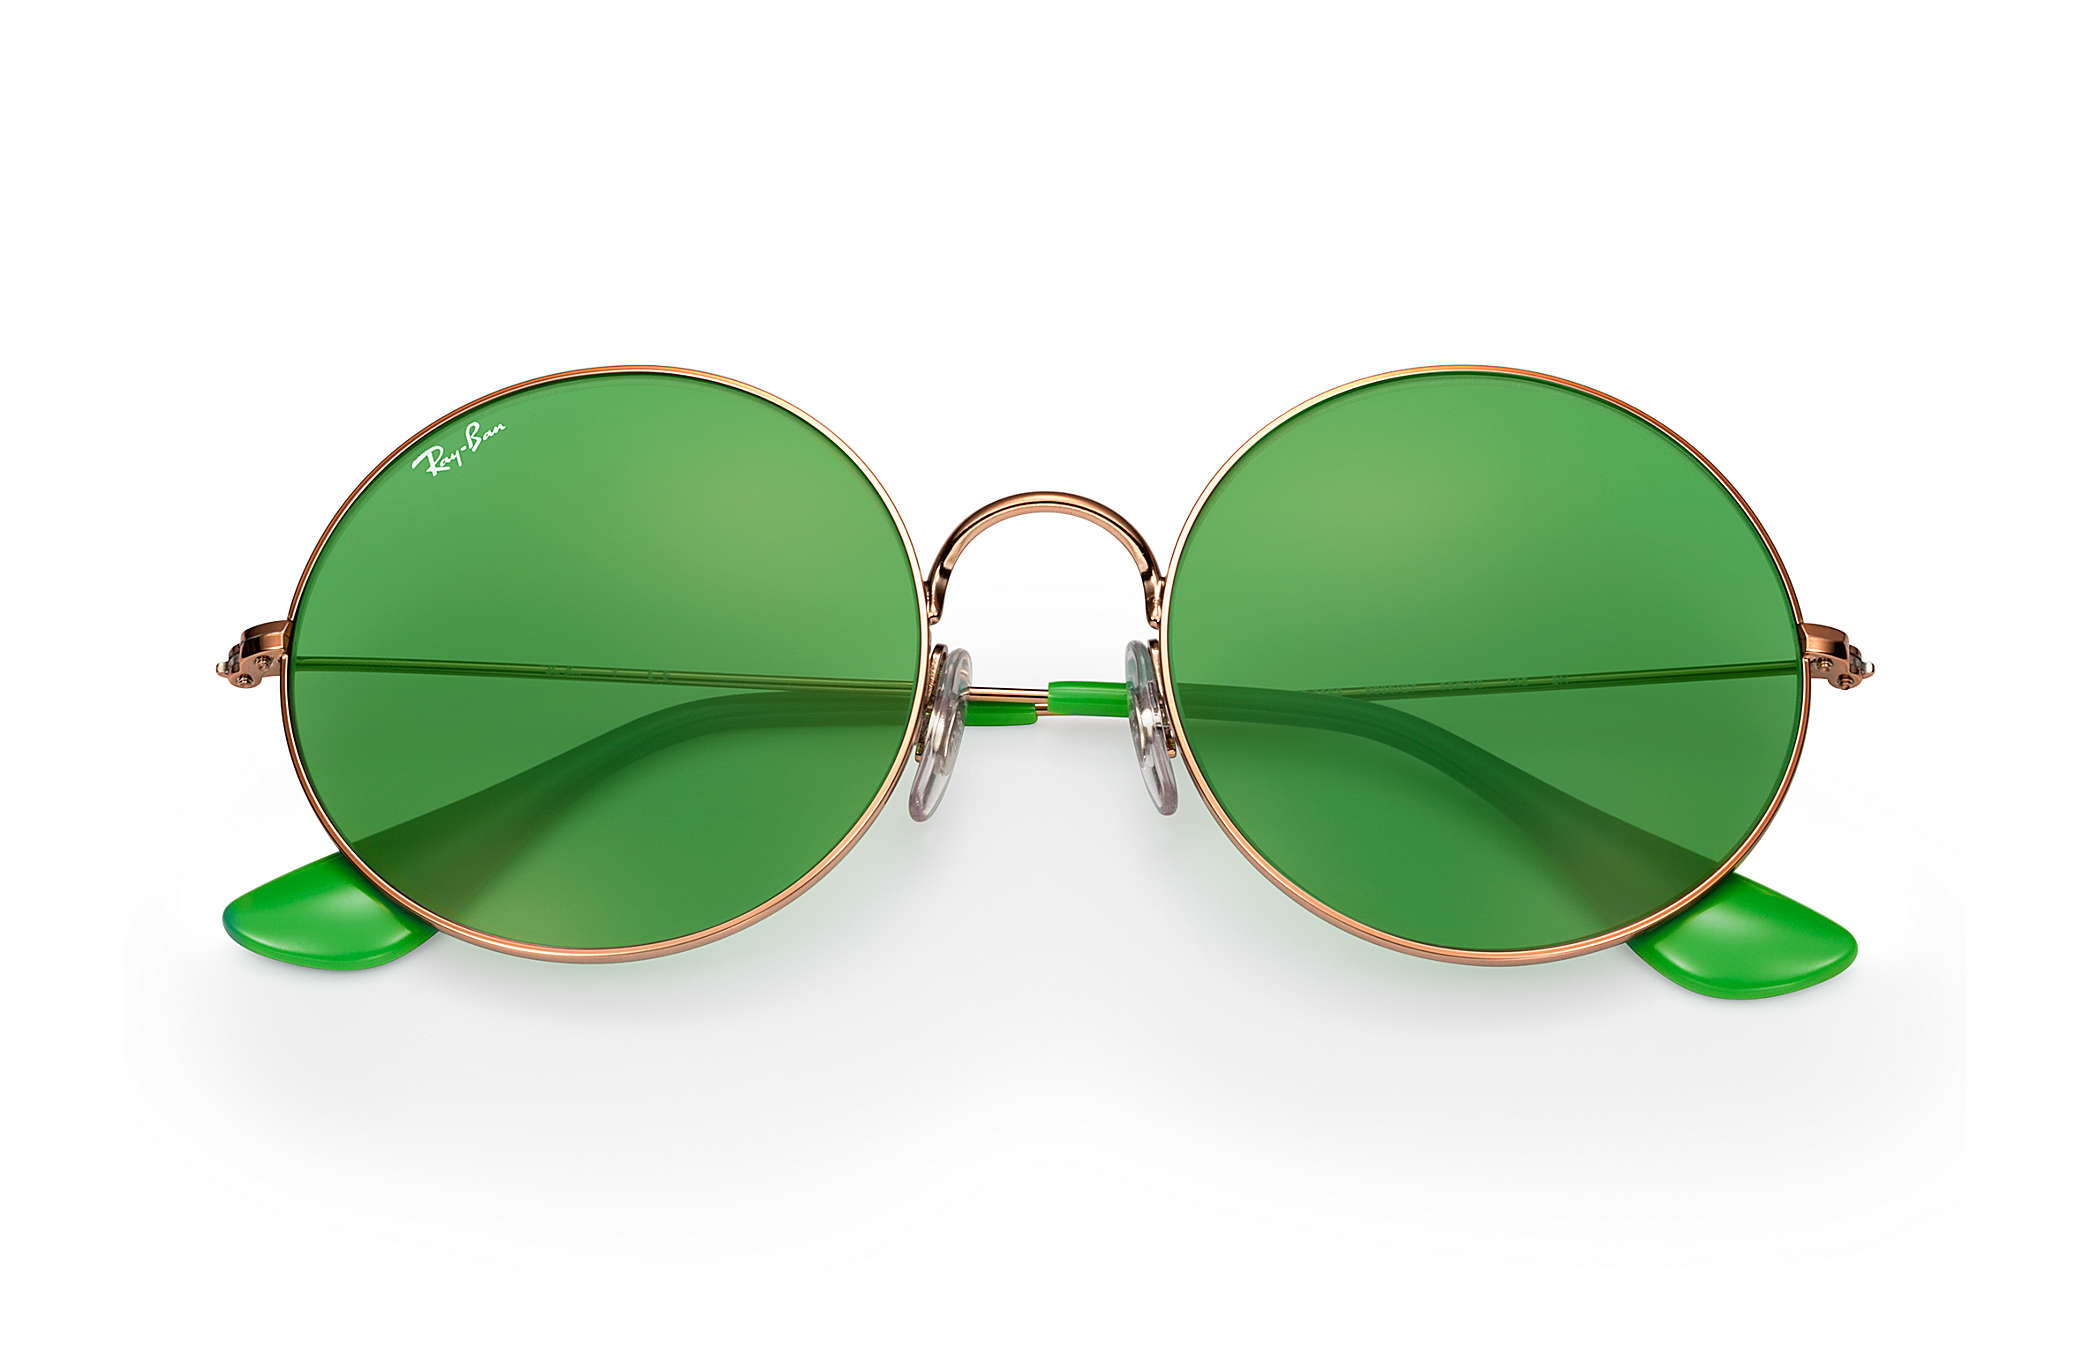 e00eb2a5e2e6 It's not only sunglasses that Ray-Ban are rocking right now. The retro  inspired Ja-Jo is also available in an optical frame, oversized and round,  ...